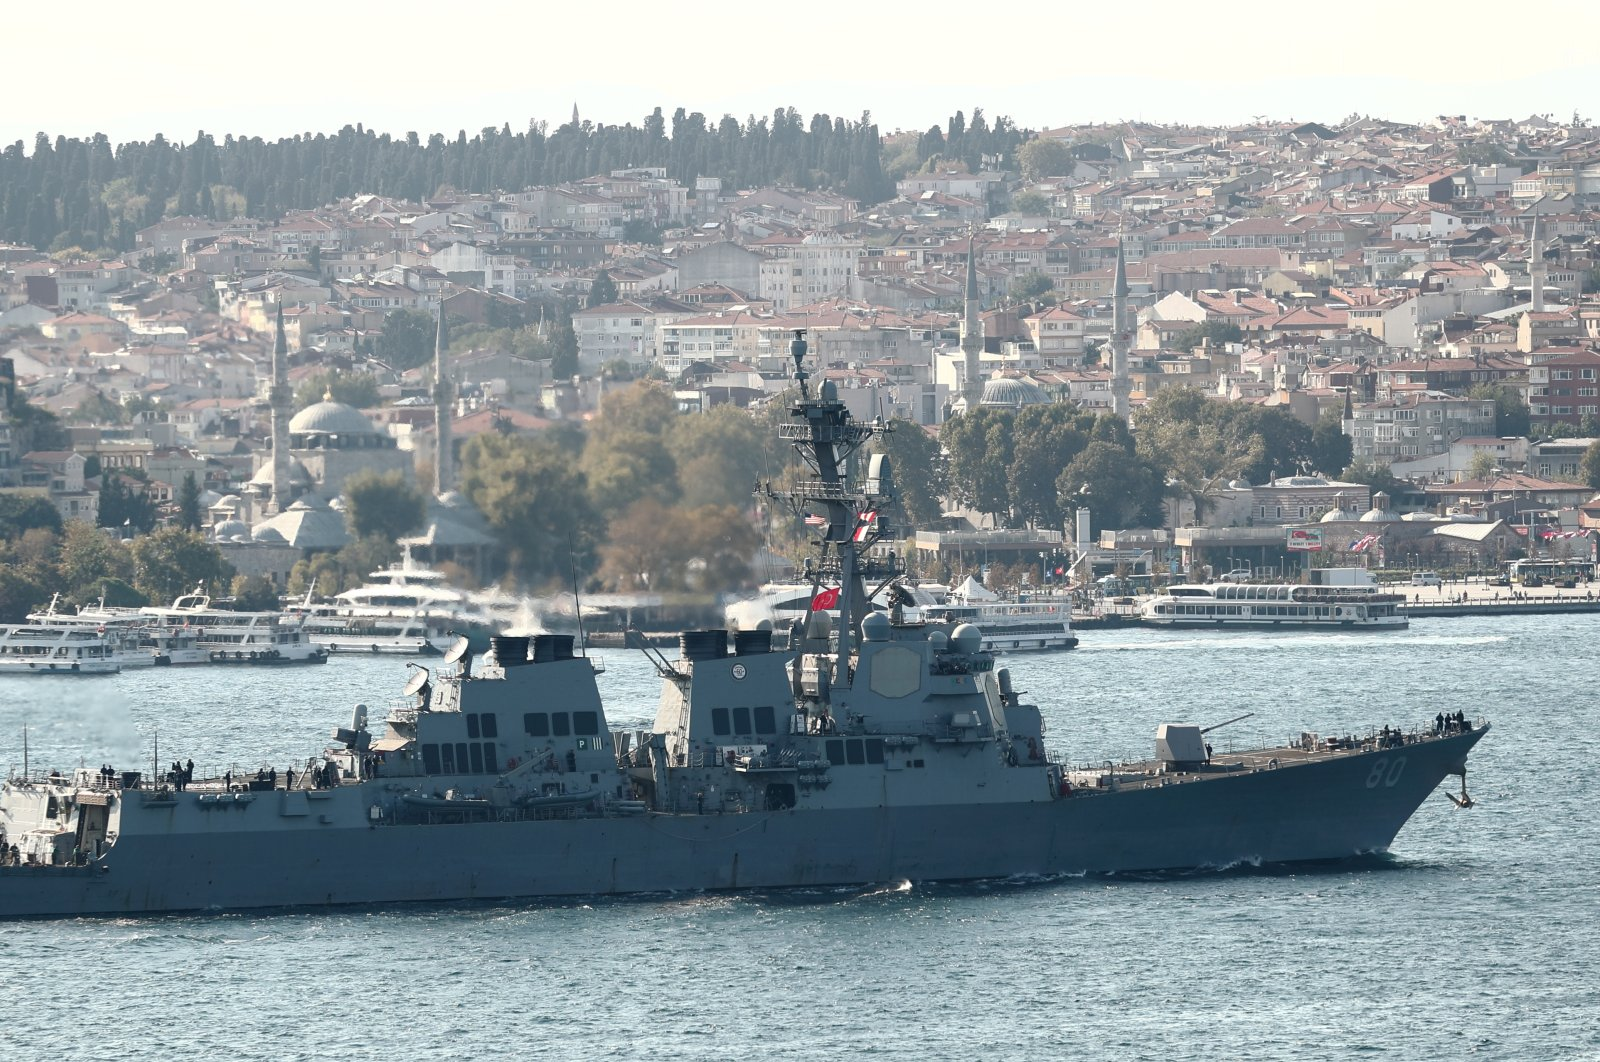 The U.S. Navy Arleigh-Burke class destroyer USS Roosevelt sets sail in the Bosporus, returning from the Black Sea, in Istanbul, Turkey, Oct. 2, 2020. (Reuters Photo)